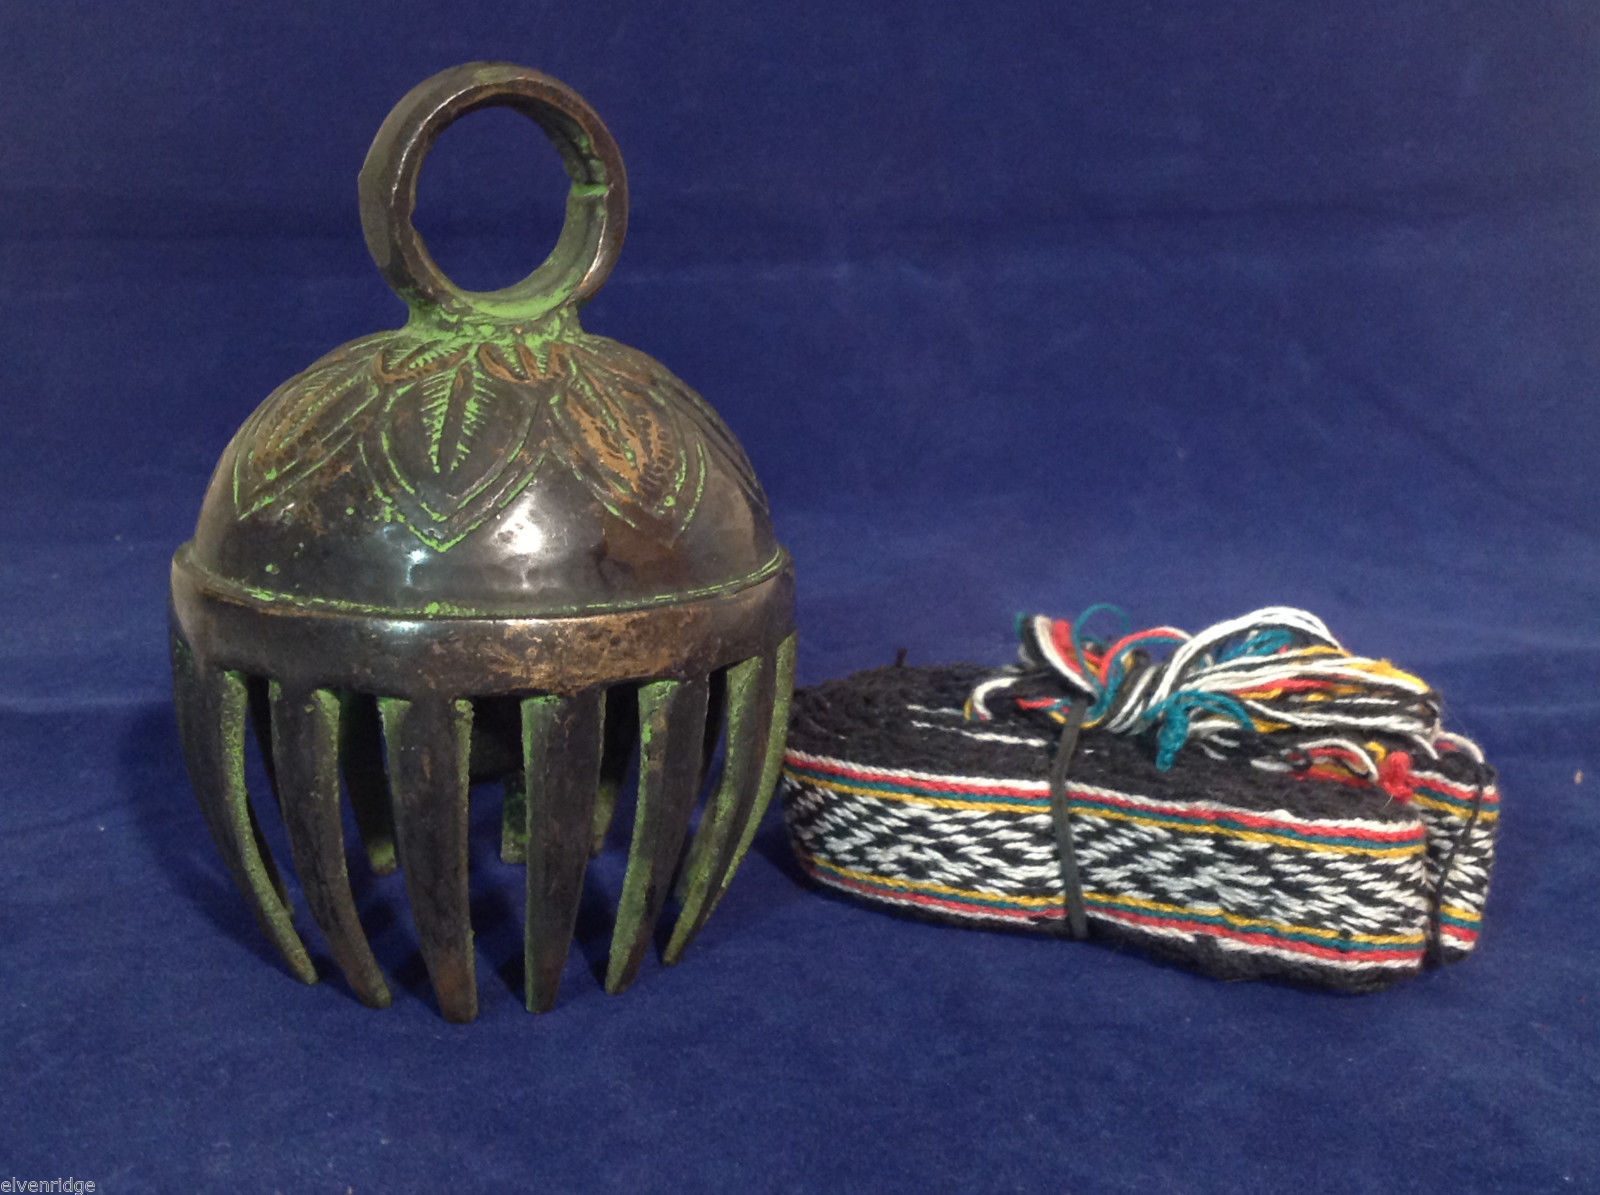 Large Ornate Tibetan Cowbell Cow Bell w/ Colorful Hand-Woven Strap 4.5 X 3 #3